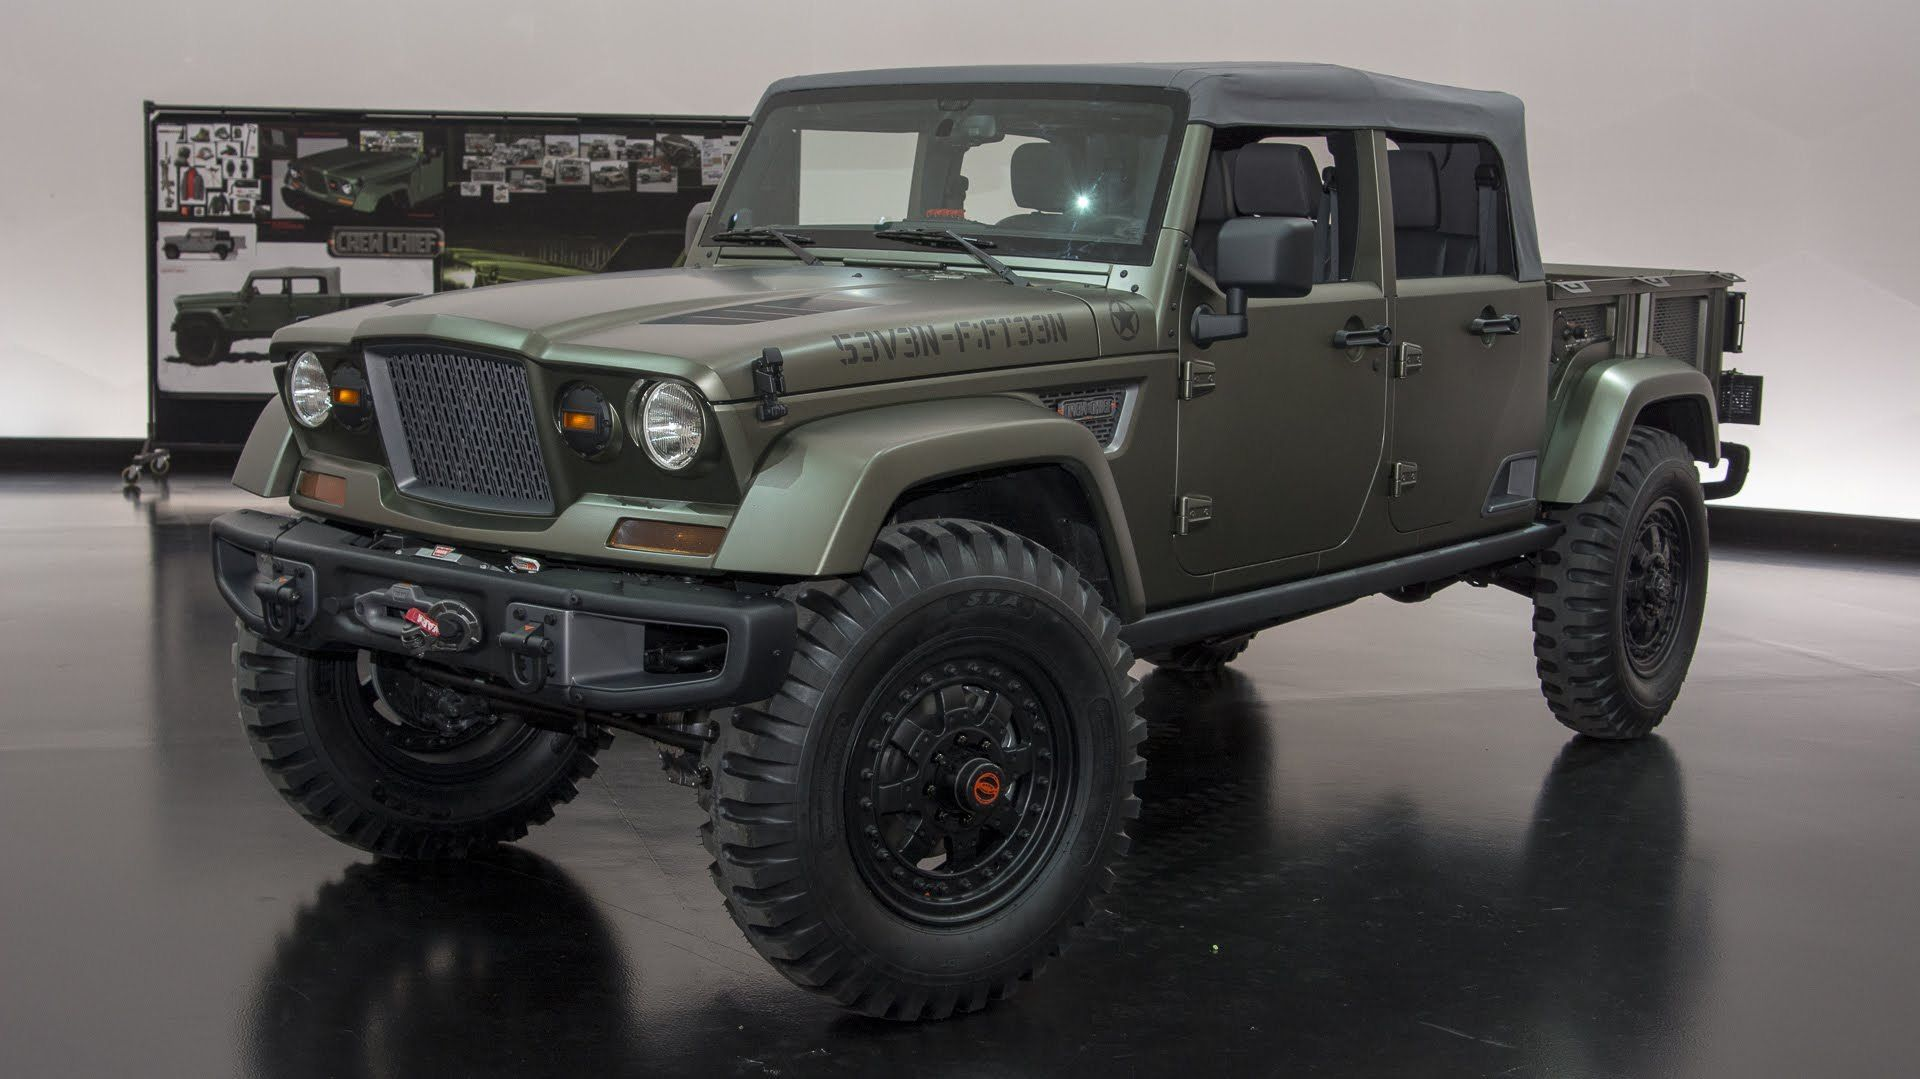 specs of the modern new comic diesel unlimited sevilla jeep image wrangler encuentro classy